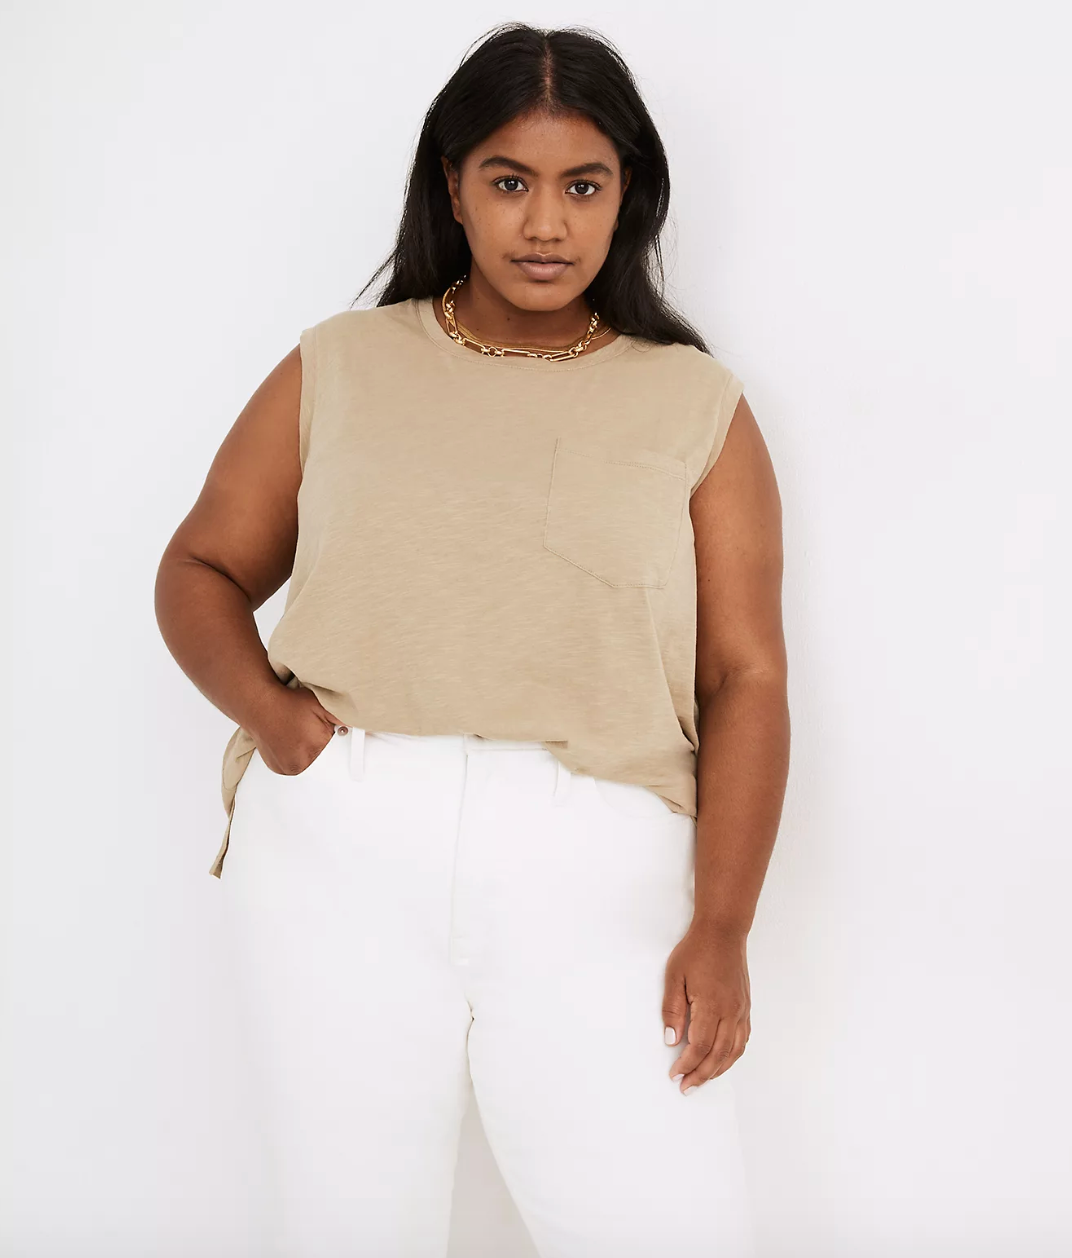 model wearing the olive green tank